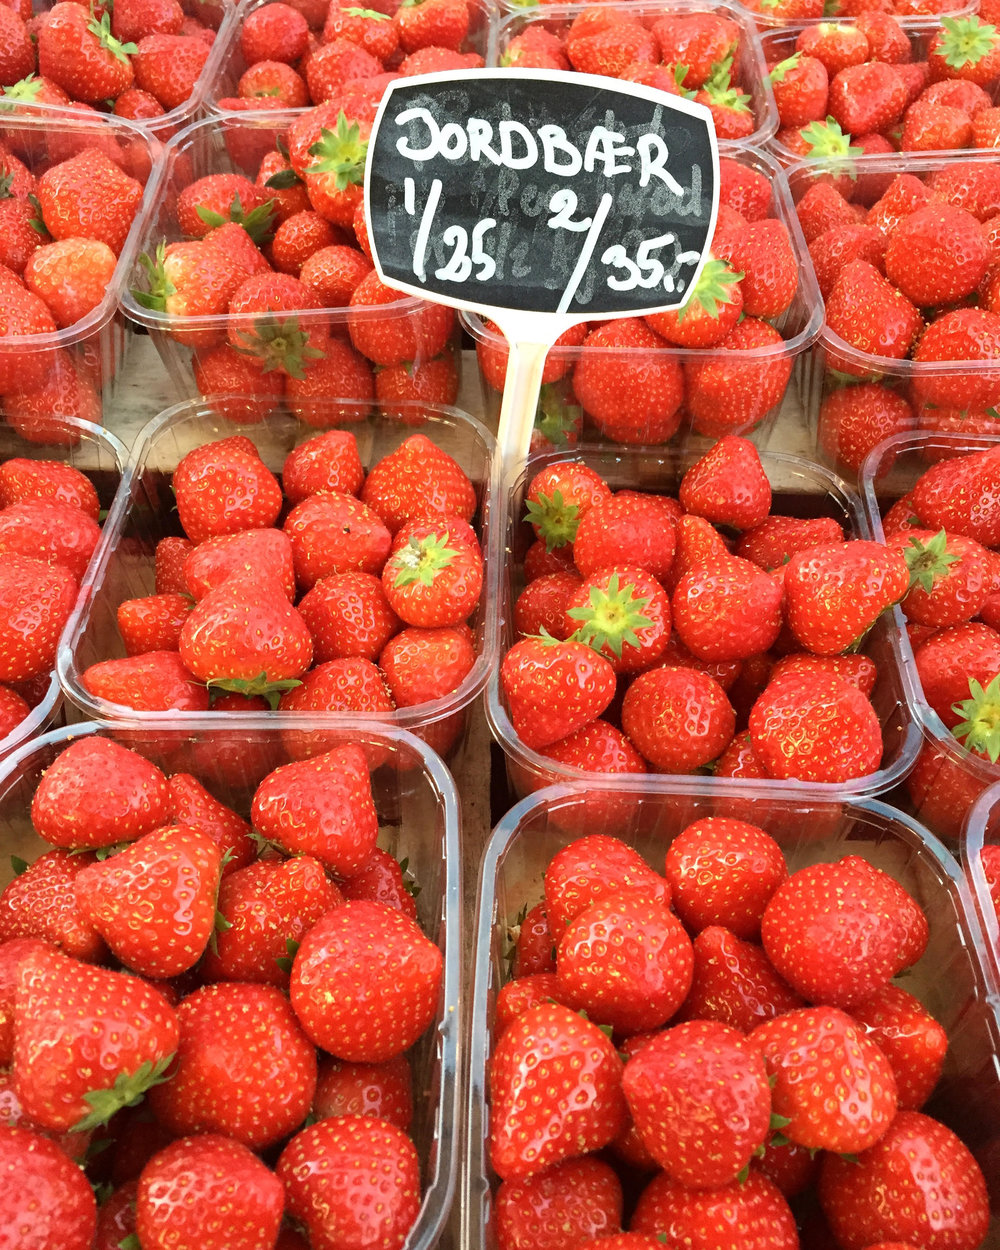 Yummy Danish strawberries